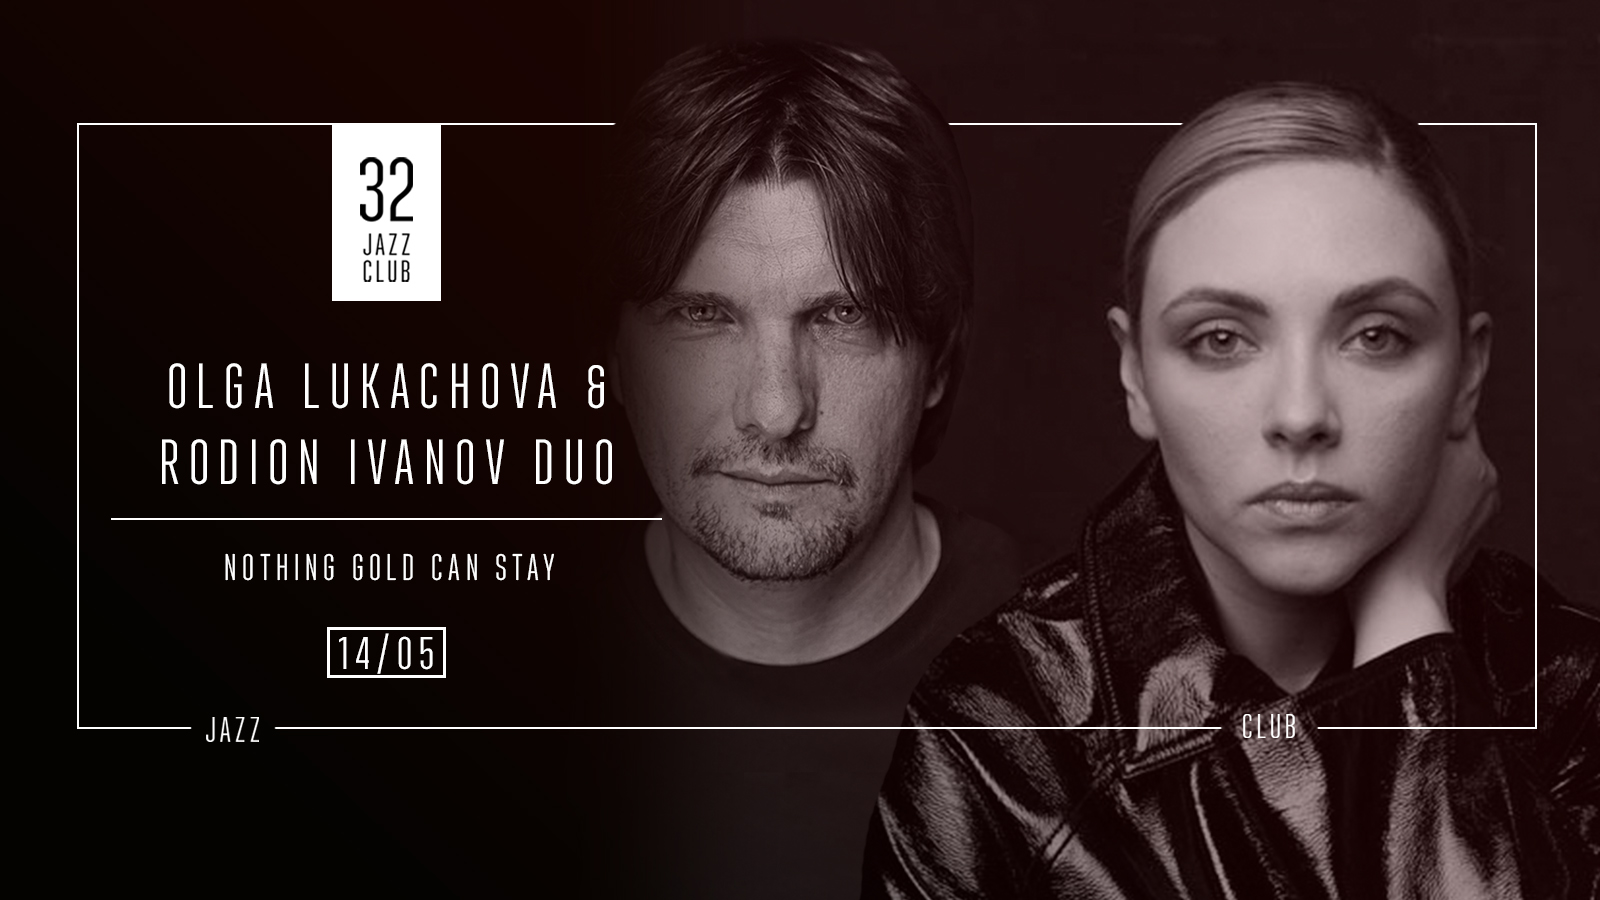 Olga Lukachova & Rodion Ivanov Duo - Nothing Gold Can Stay